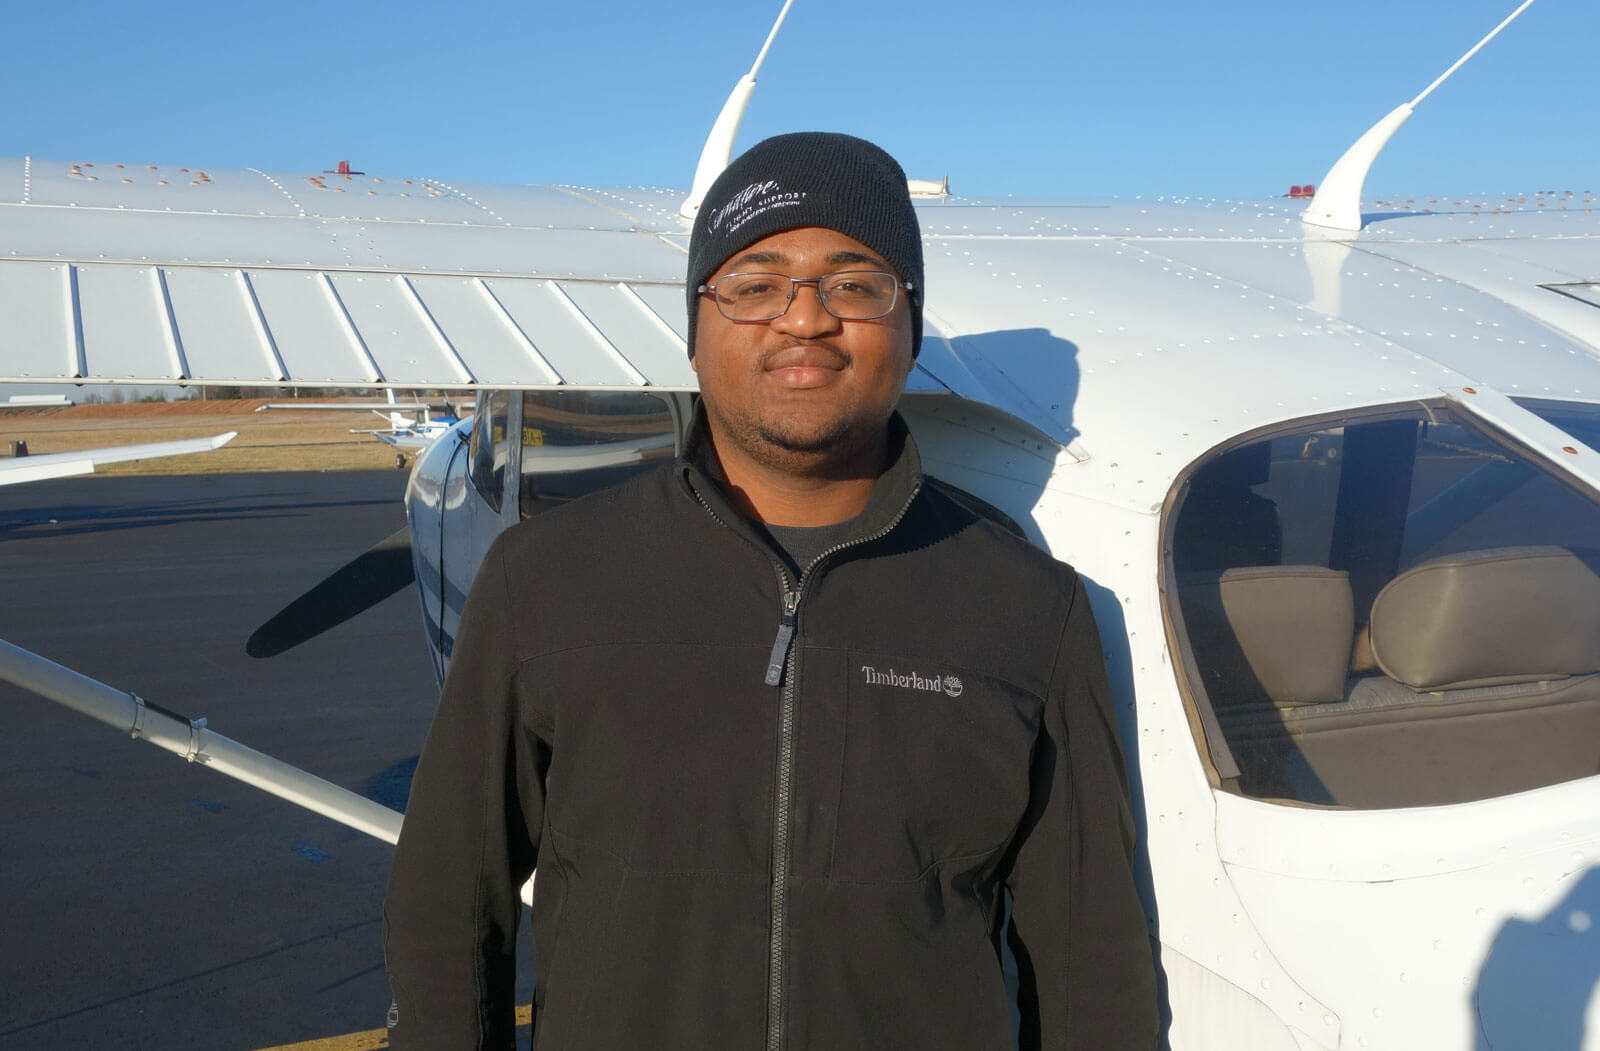 Princeton Flying School Staff - PRINCETON AIRPORT ~ Learn To